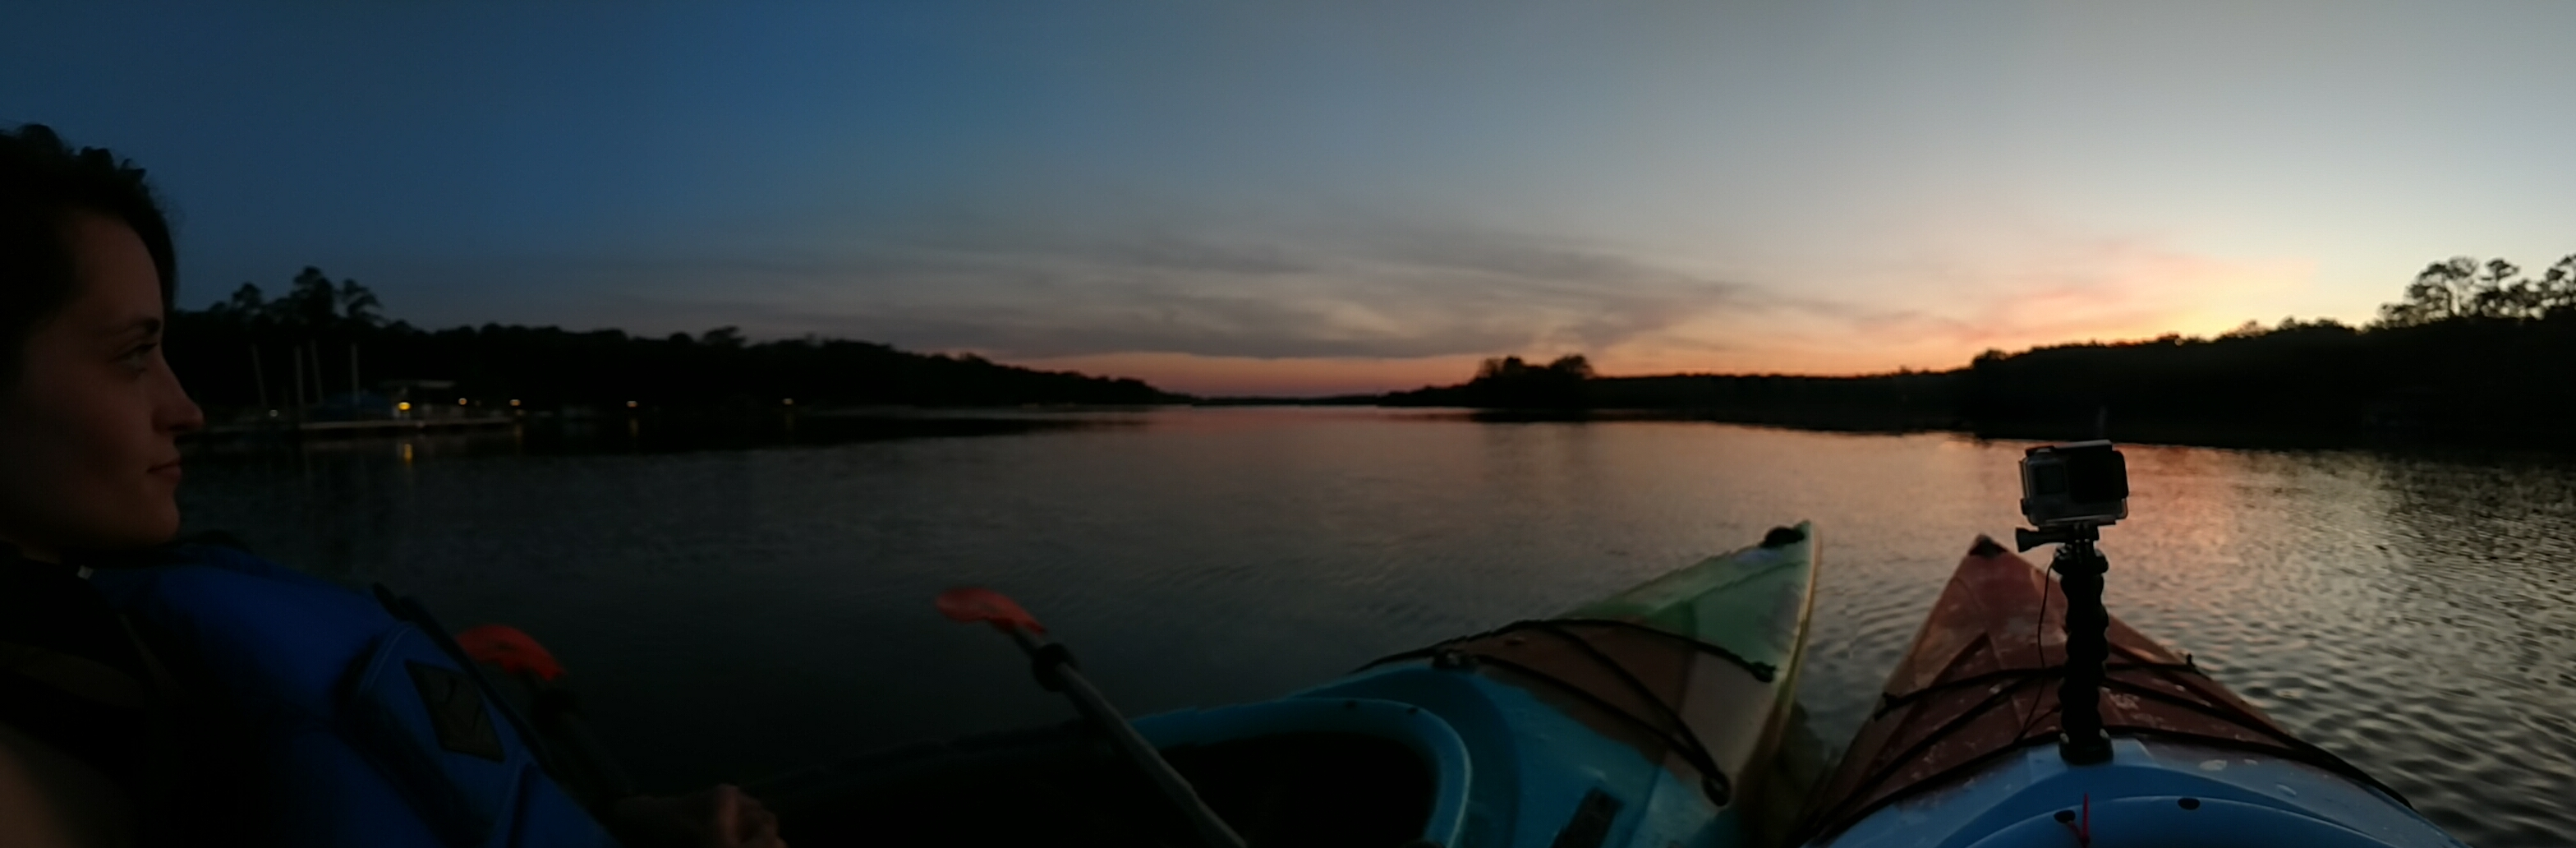 OWC Sunset Paddle Series